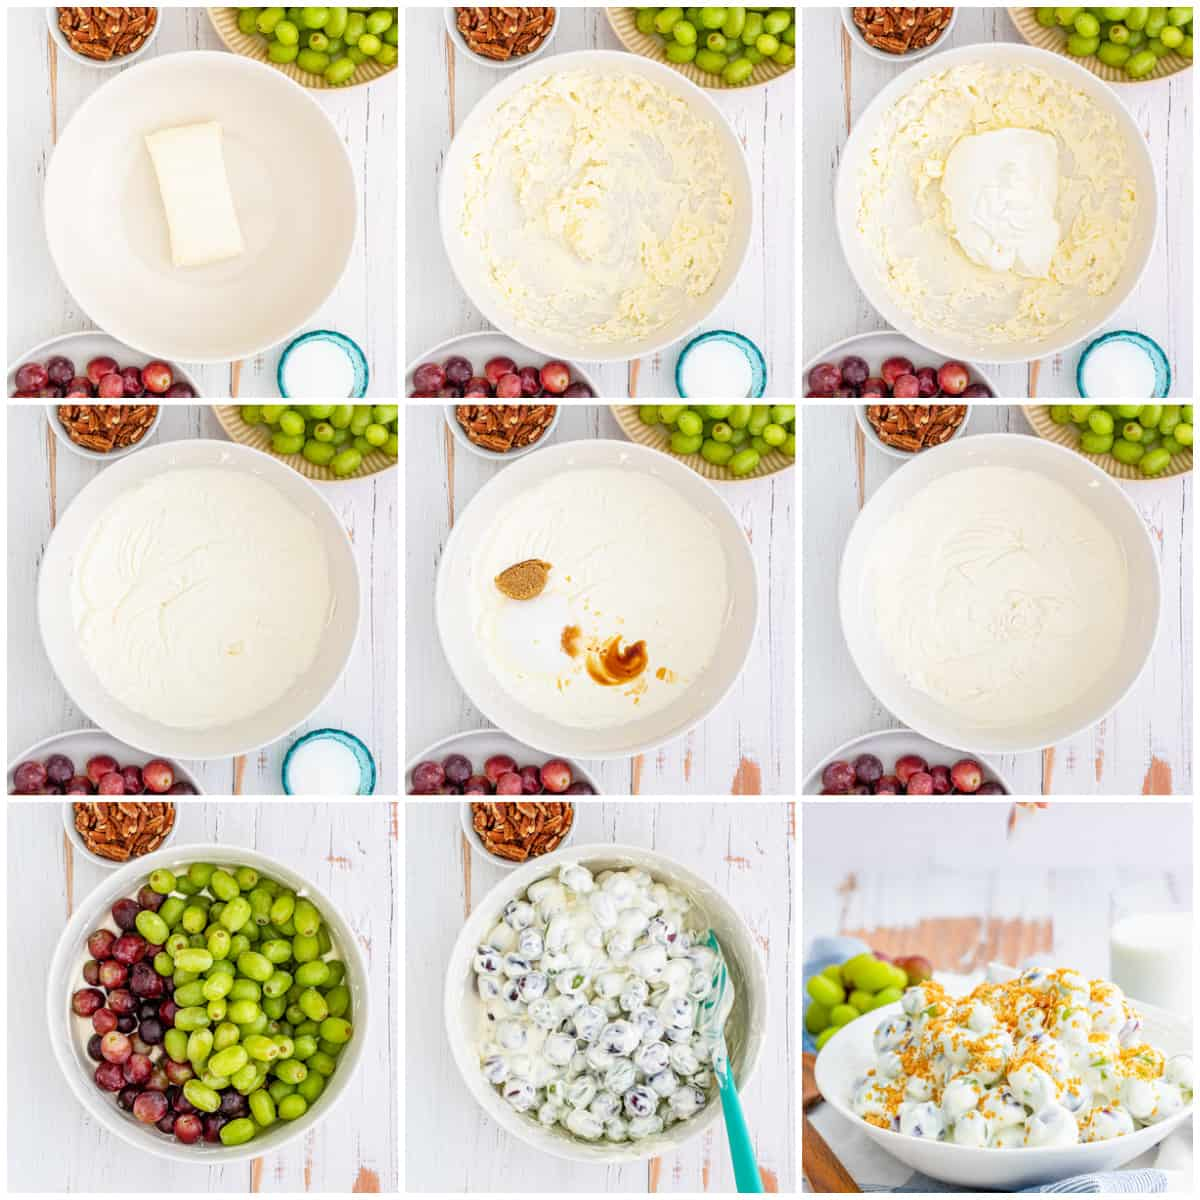 Step by step photos on how to make Grape Salad